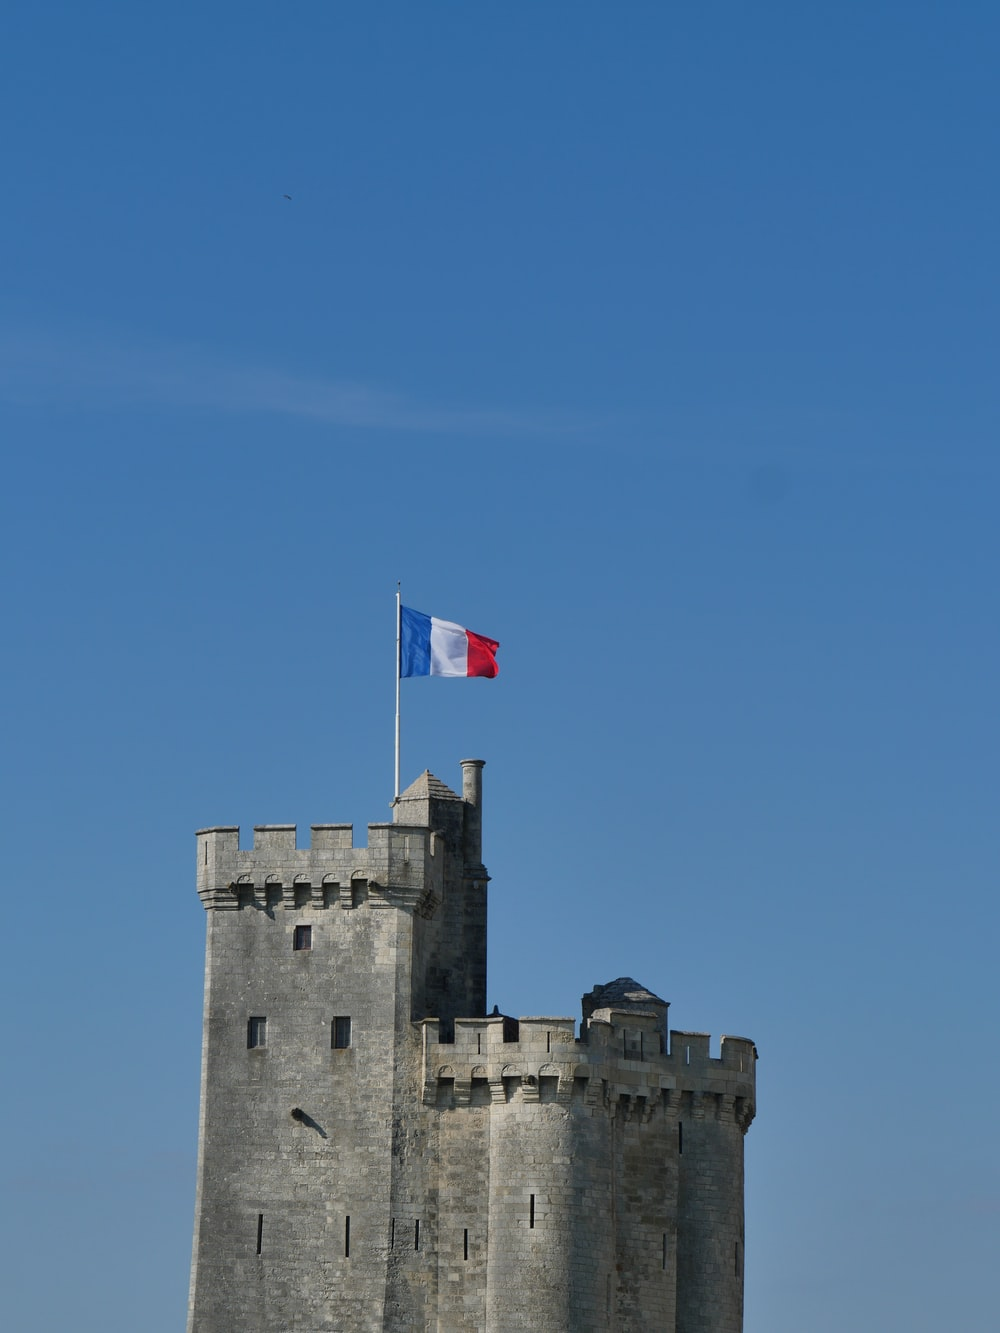 gray concrete castle with flag of us a on top under blue sky during daytime